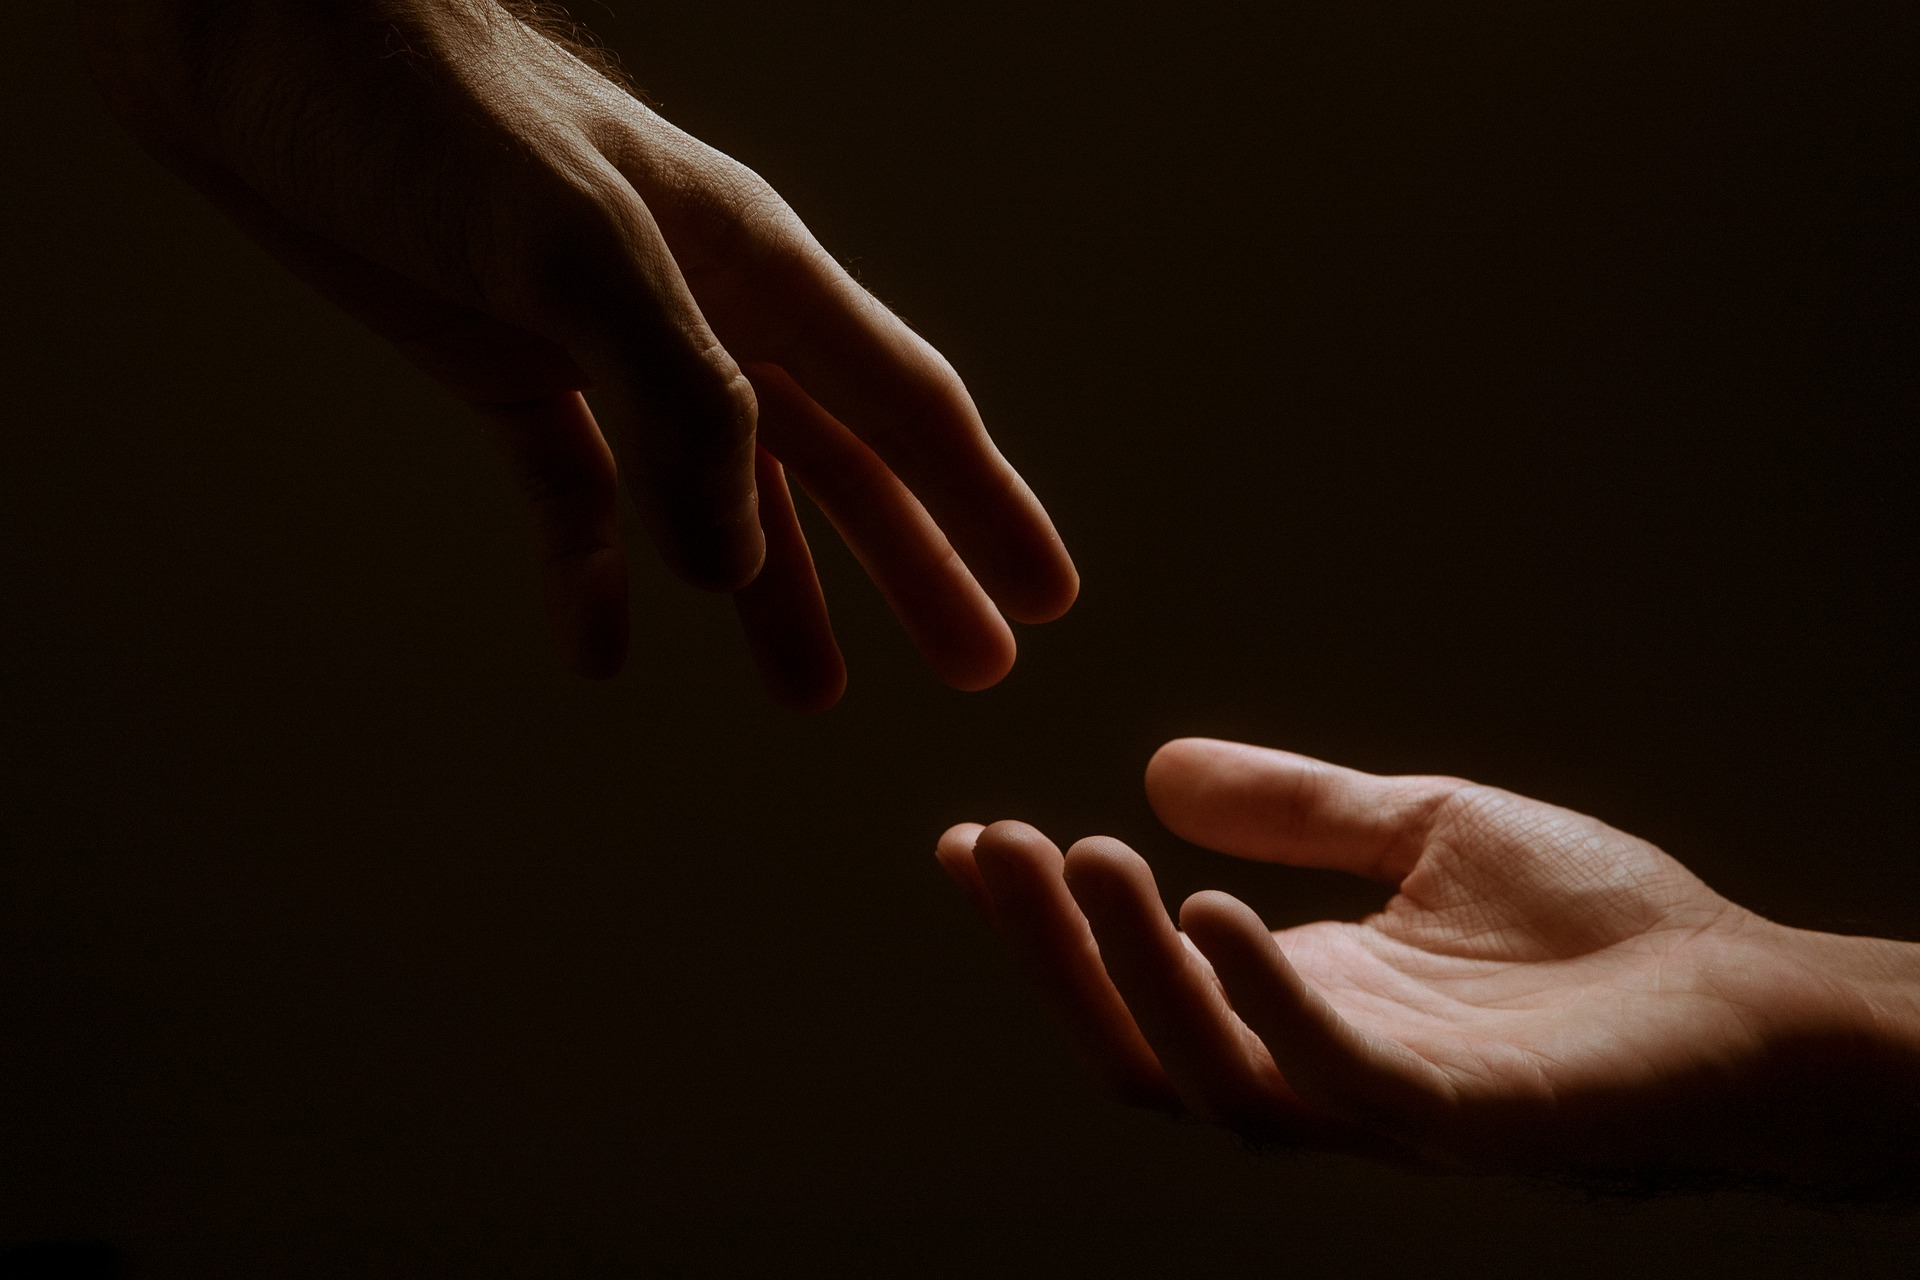 The Hand, The Christ